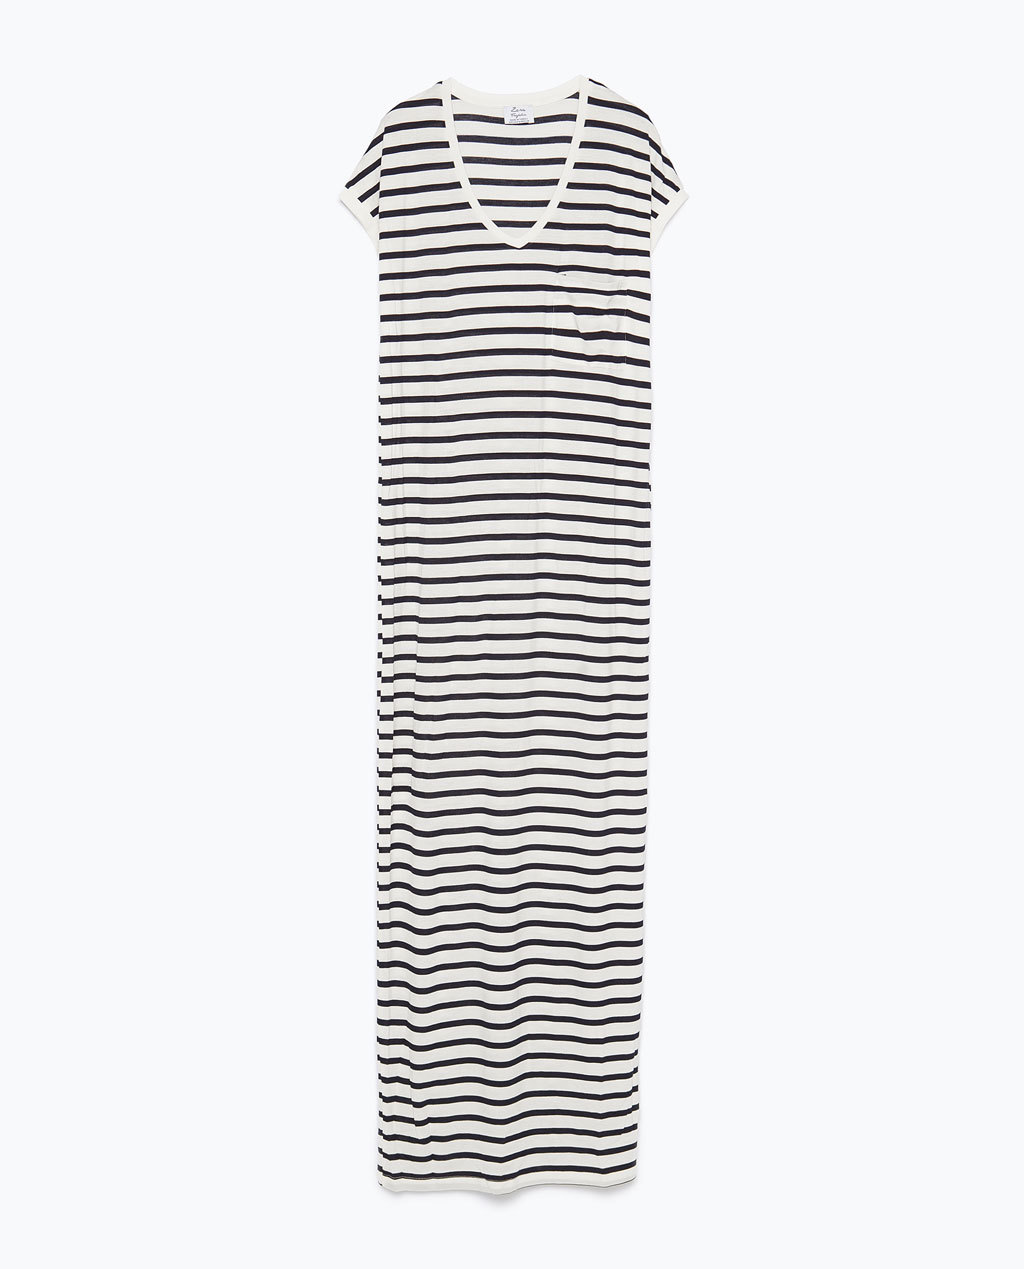 Long Striped Dress - neckline: low v-neck; fit: loose; pattern: horizontal stripes; style: maxi dress; length: ankle length; secondary colour: white; predominant colour: black; occasions: casual; fibres: viscose/rayon - stretch; sleeve length: short sleeve; sleeve style: standard; pattern type: fabric; pattern size: standard; texture group: jersey - stretchy/drapey; season: s/s 2015; wardrobe: basic